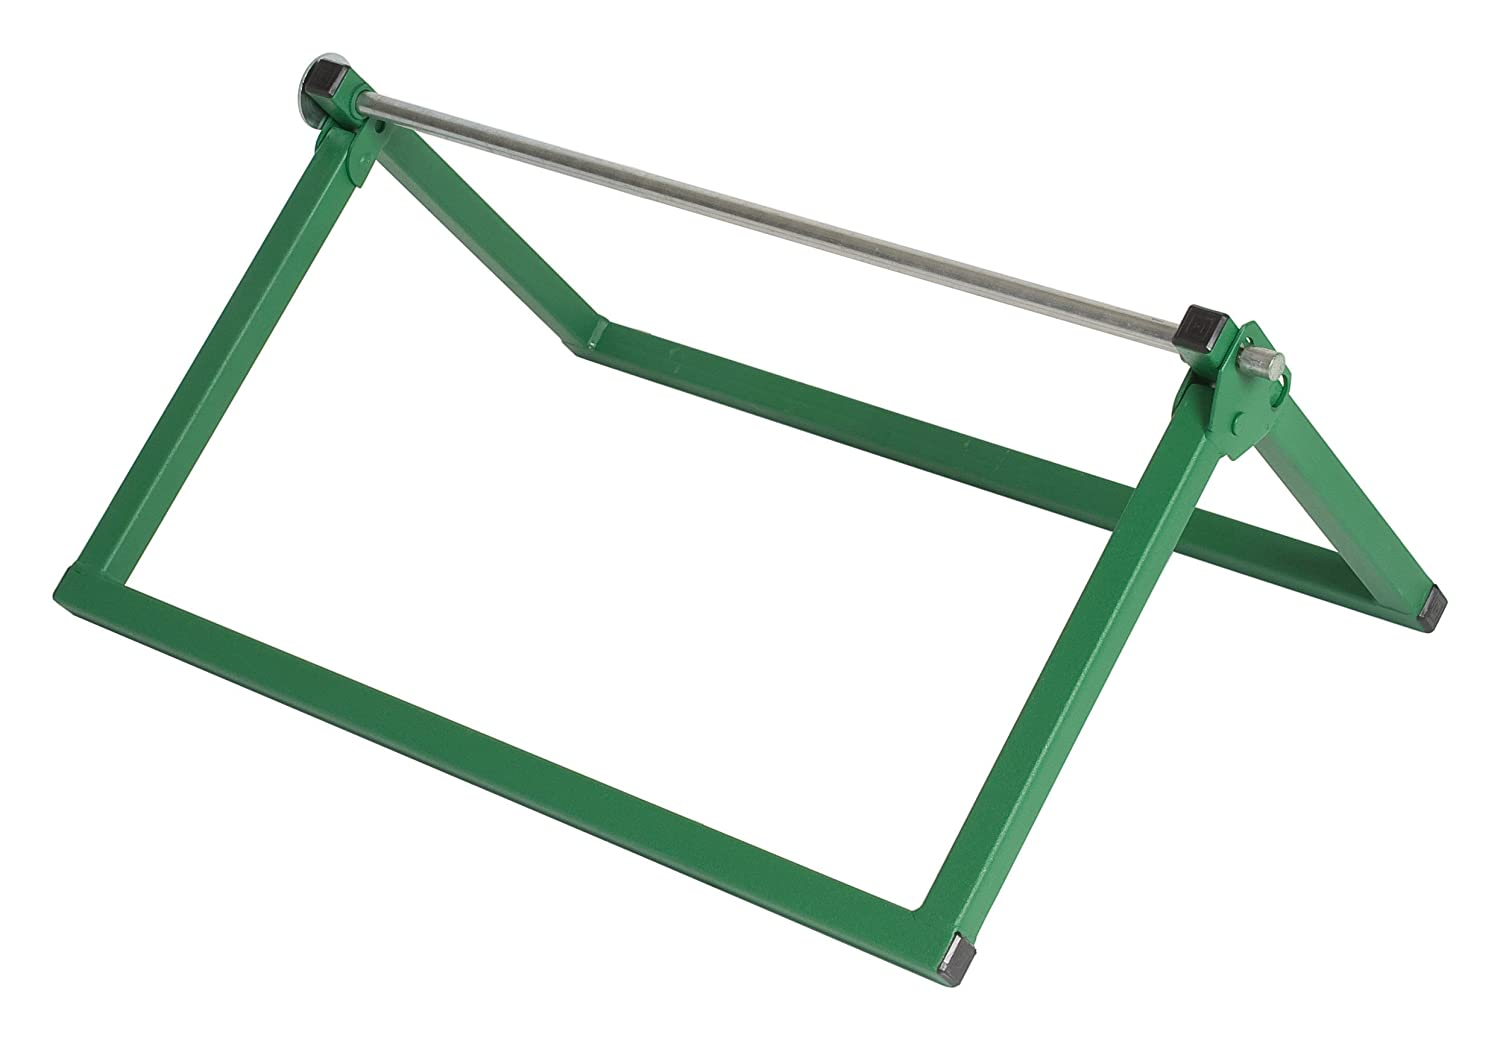 Greenlee 9520 Data Cable Caddy - Electrical Cables - Amazon.com